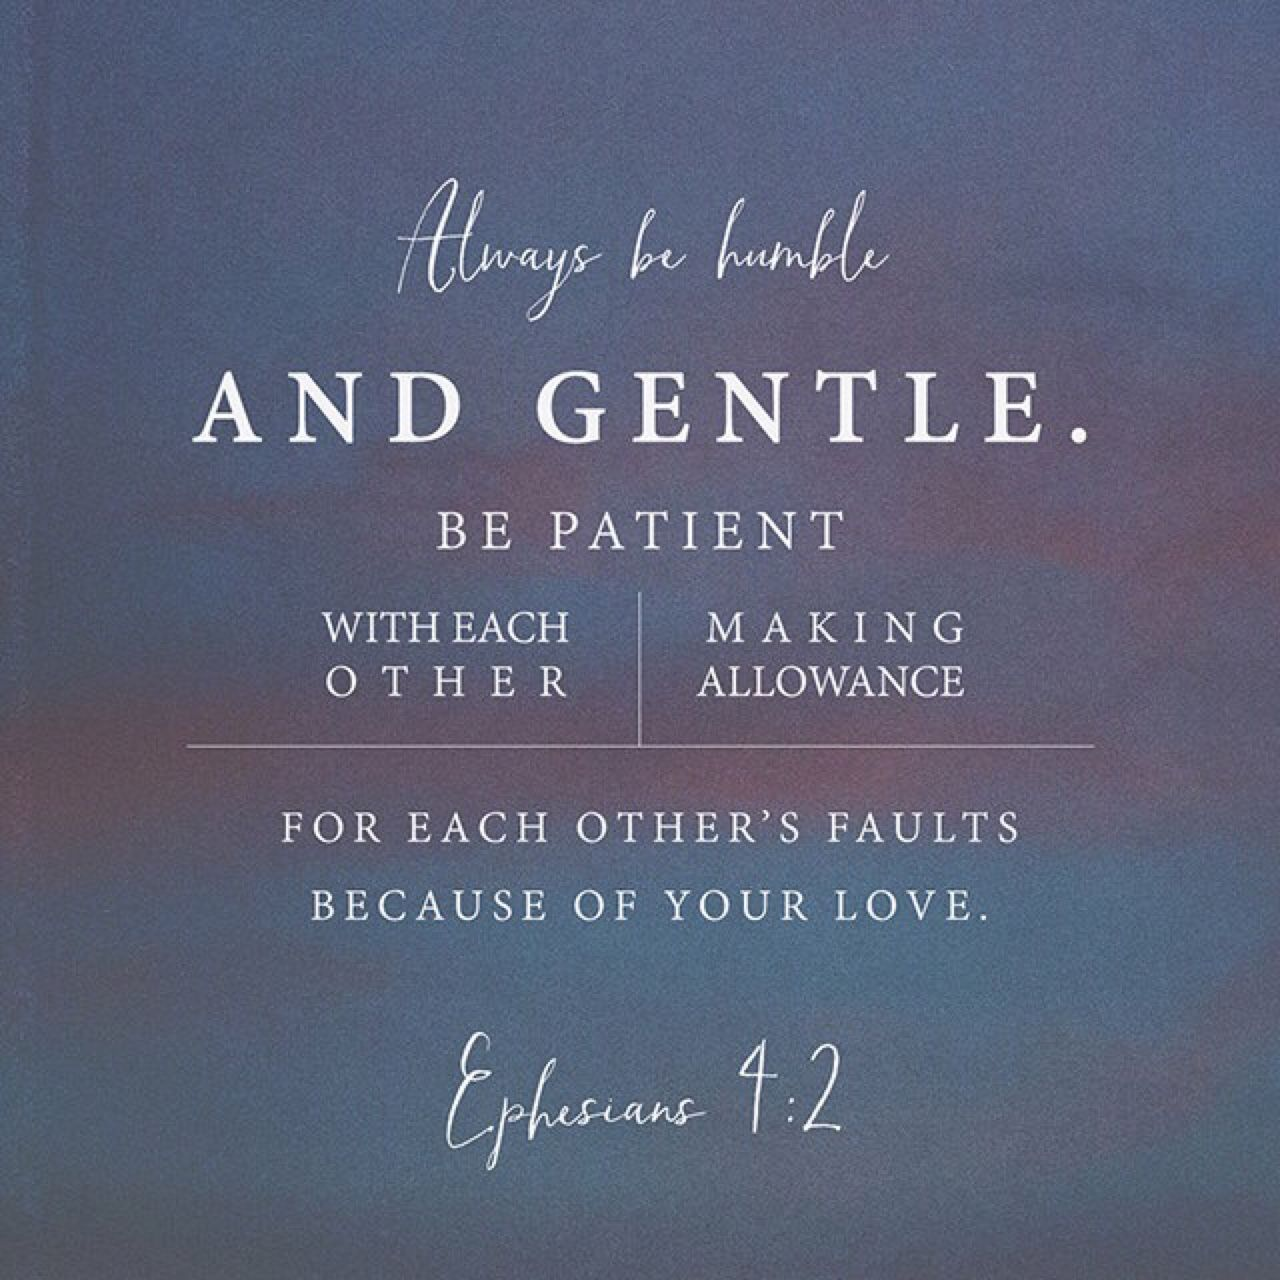 Quotes About Anger And Rage: Best 25+ Ephesians 4 Ideas On Pinterest